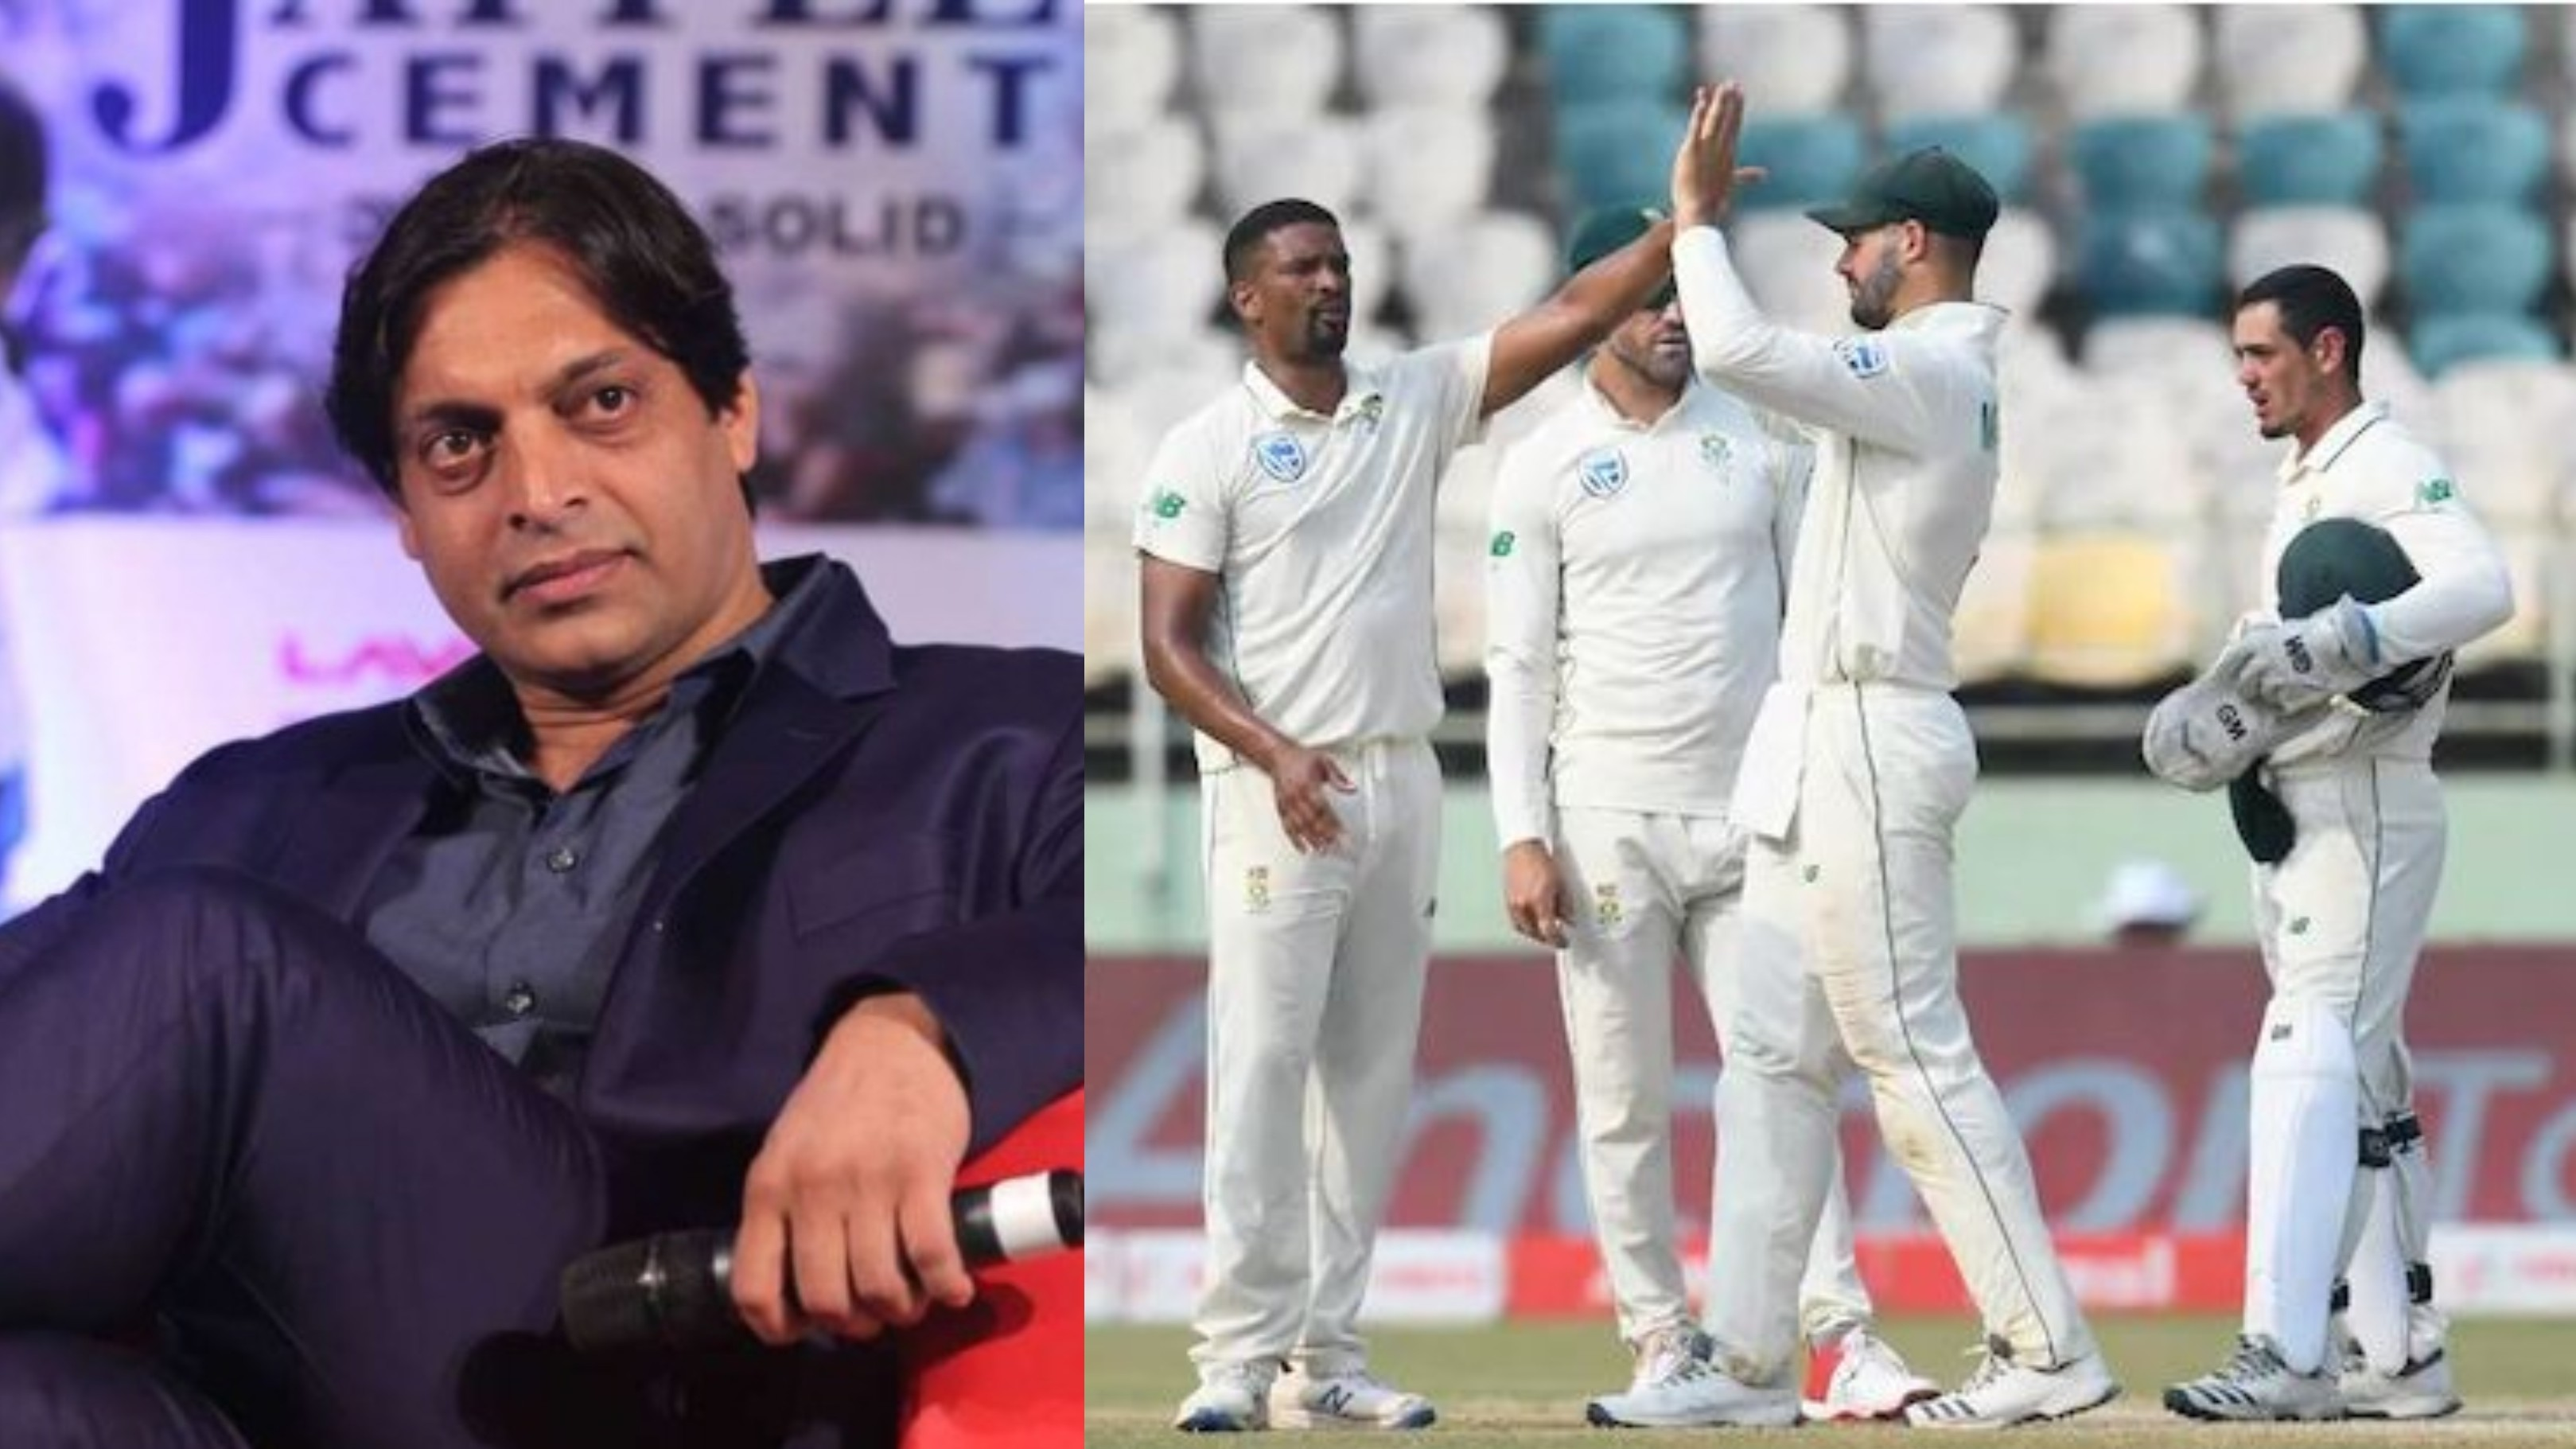 IND v SA 2019: Shoaib Akhtar slams South Africa's dismal performance in Tests against India